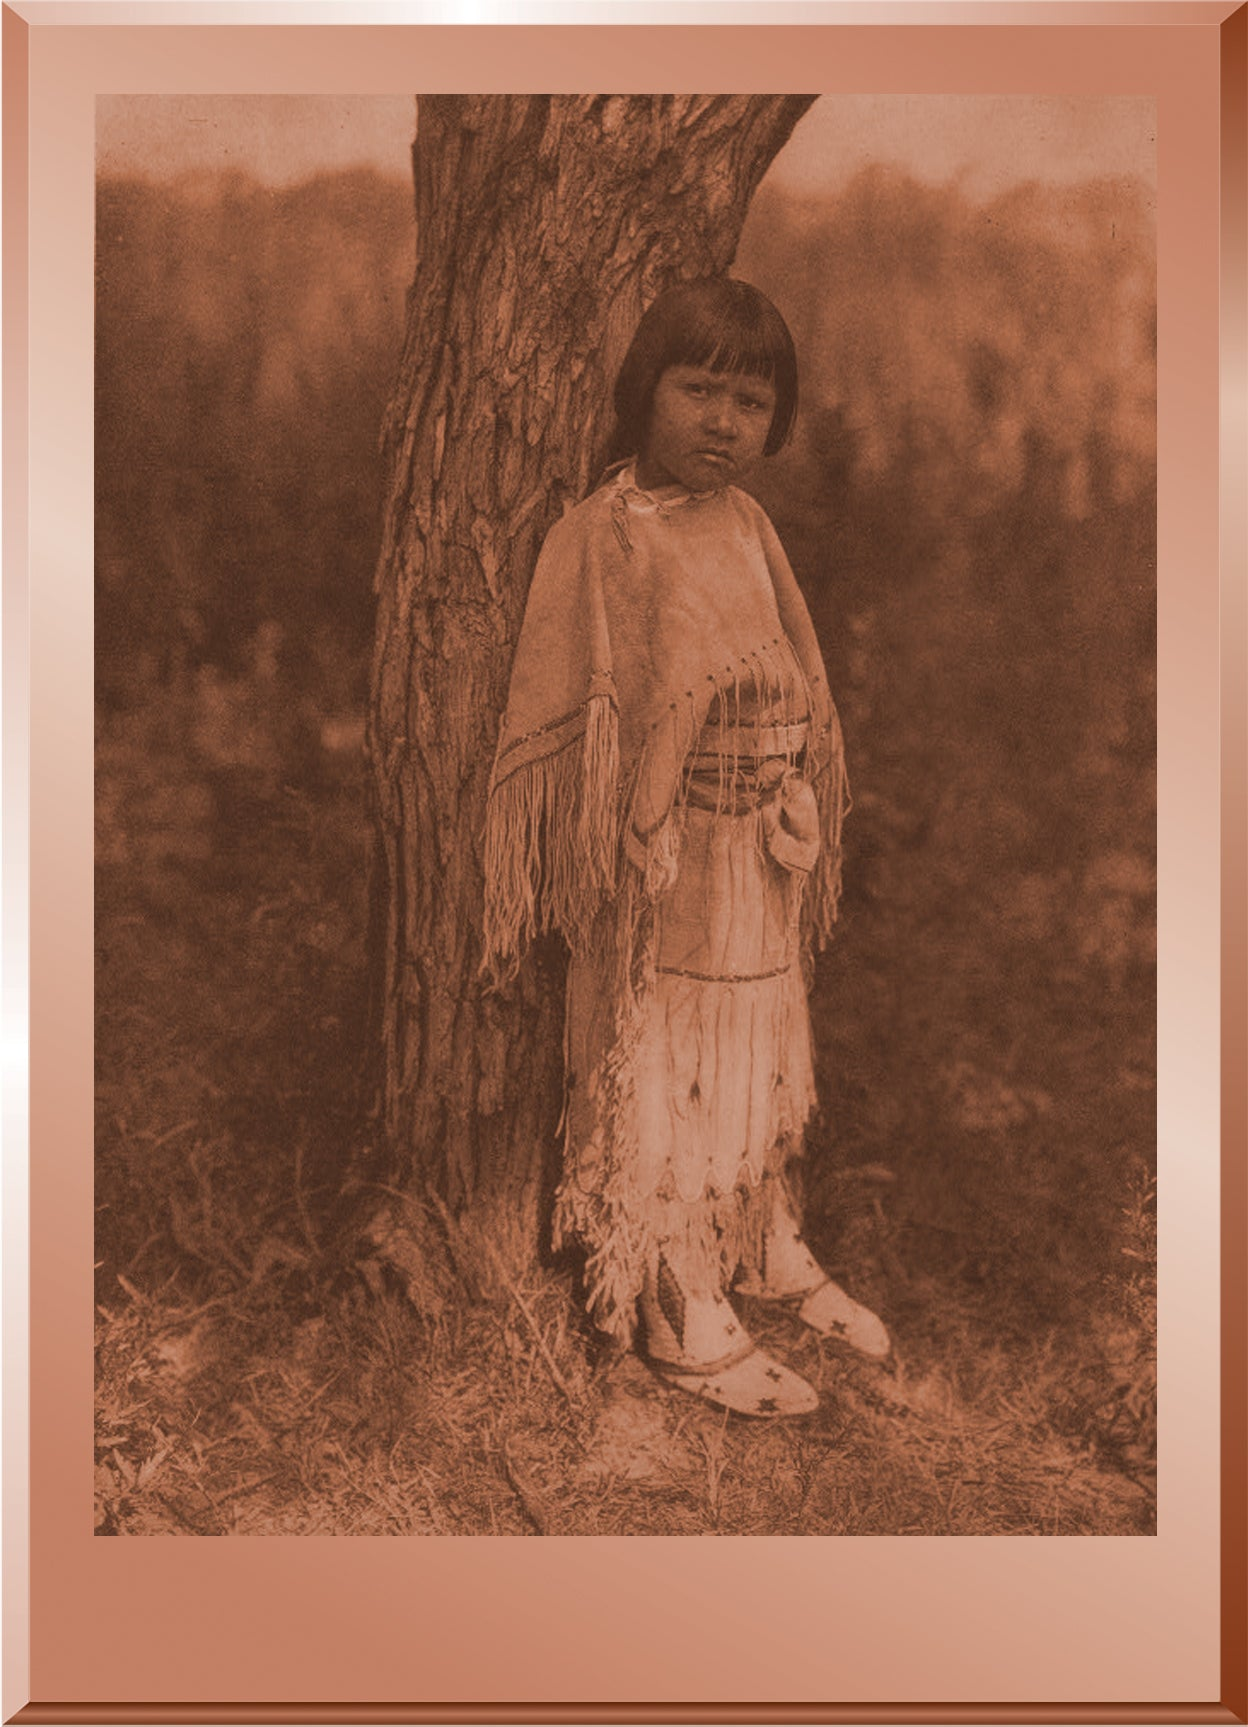 Cheyenne Child